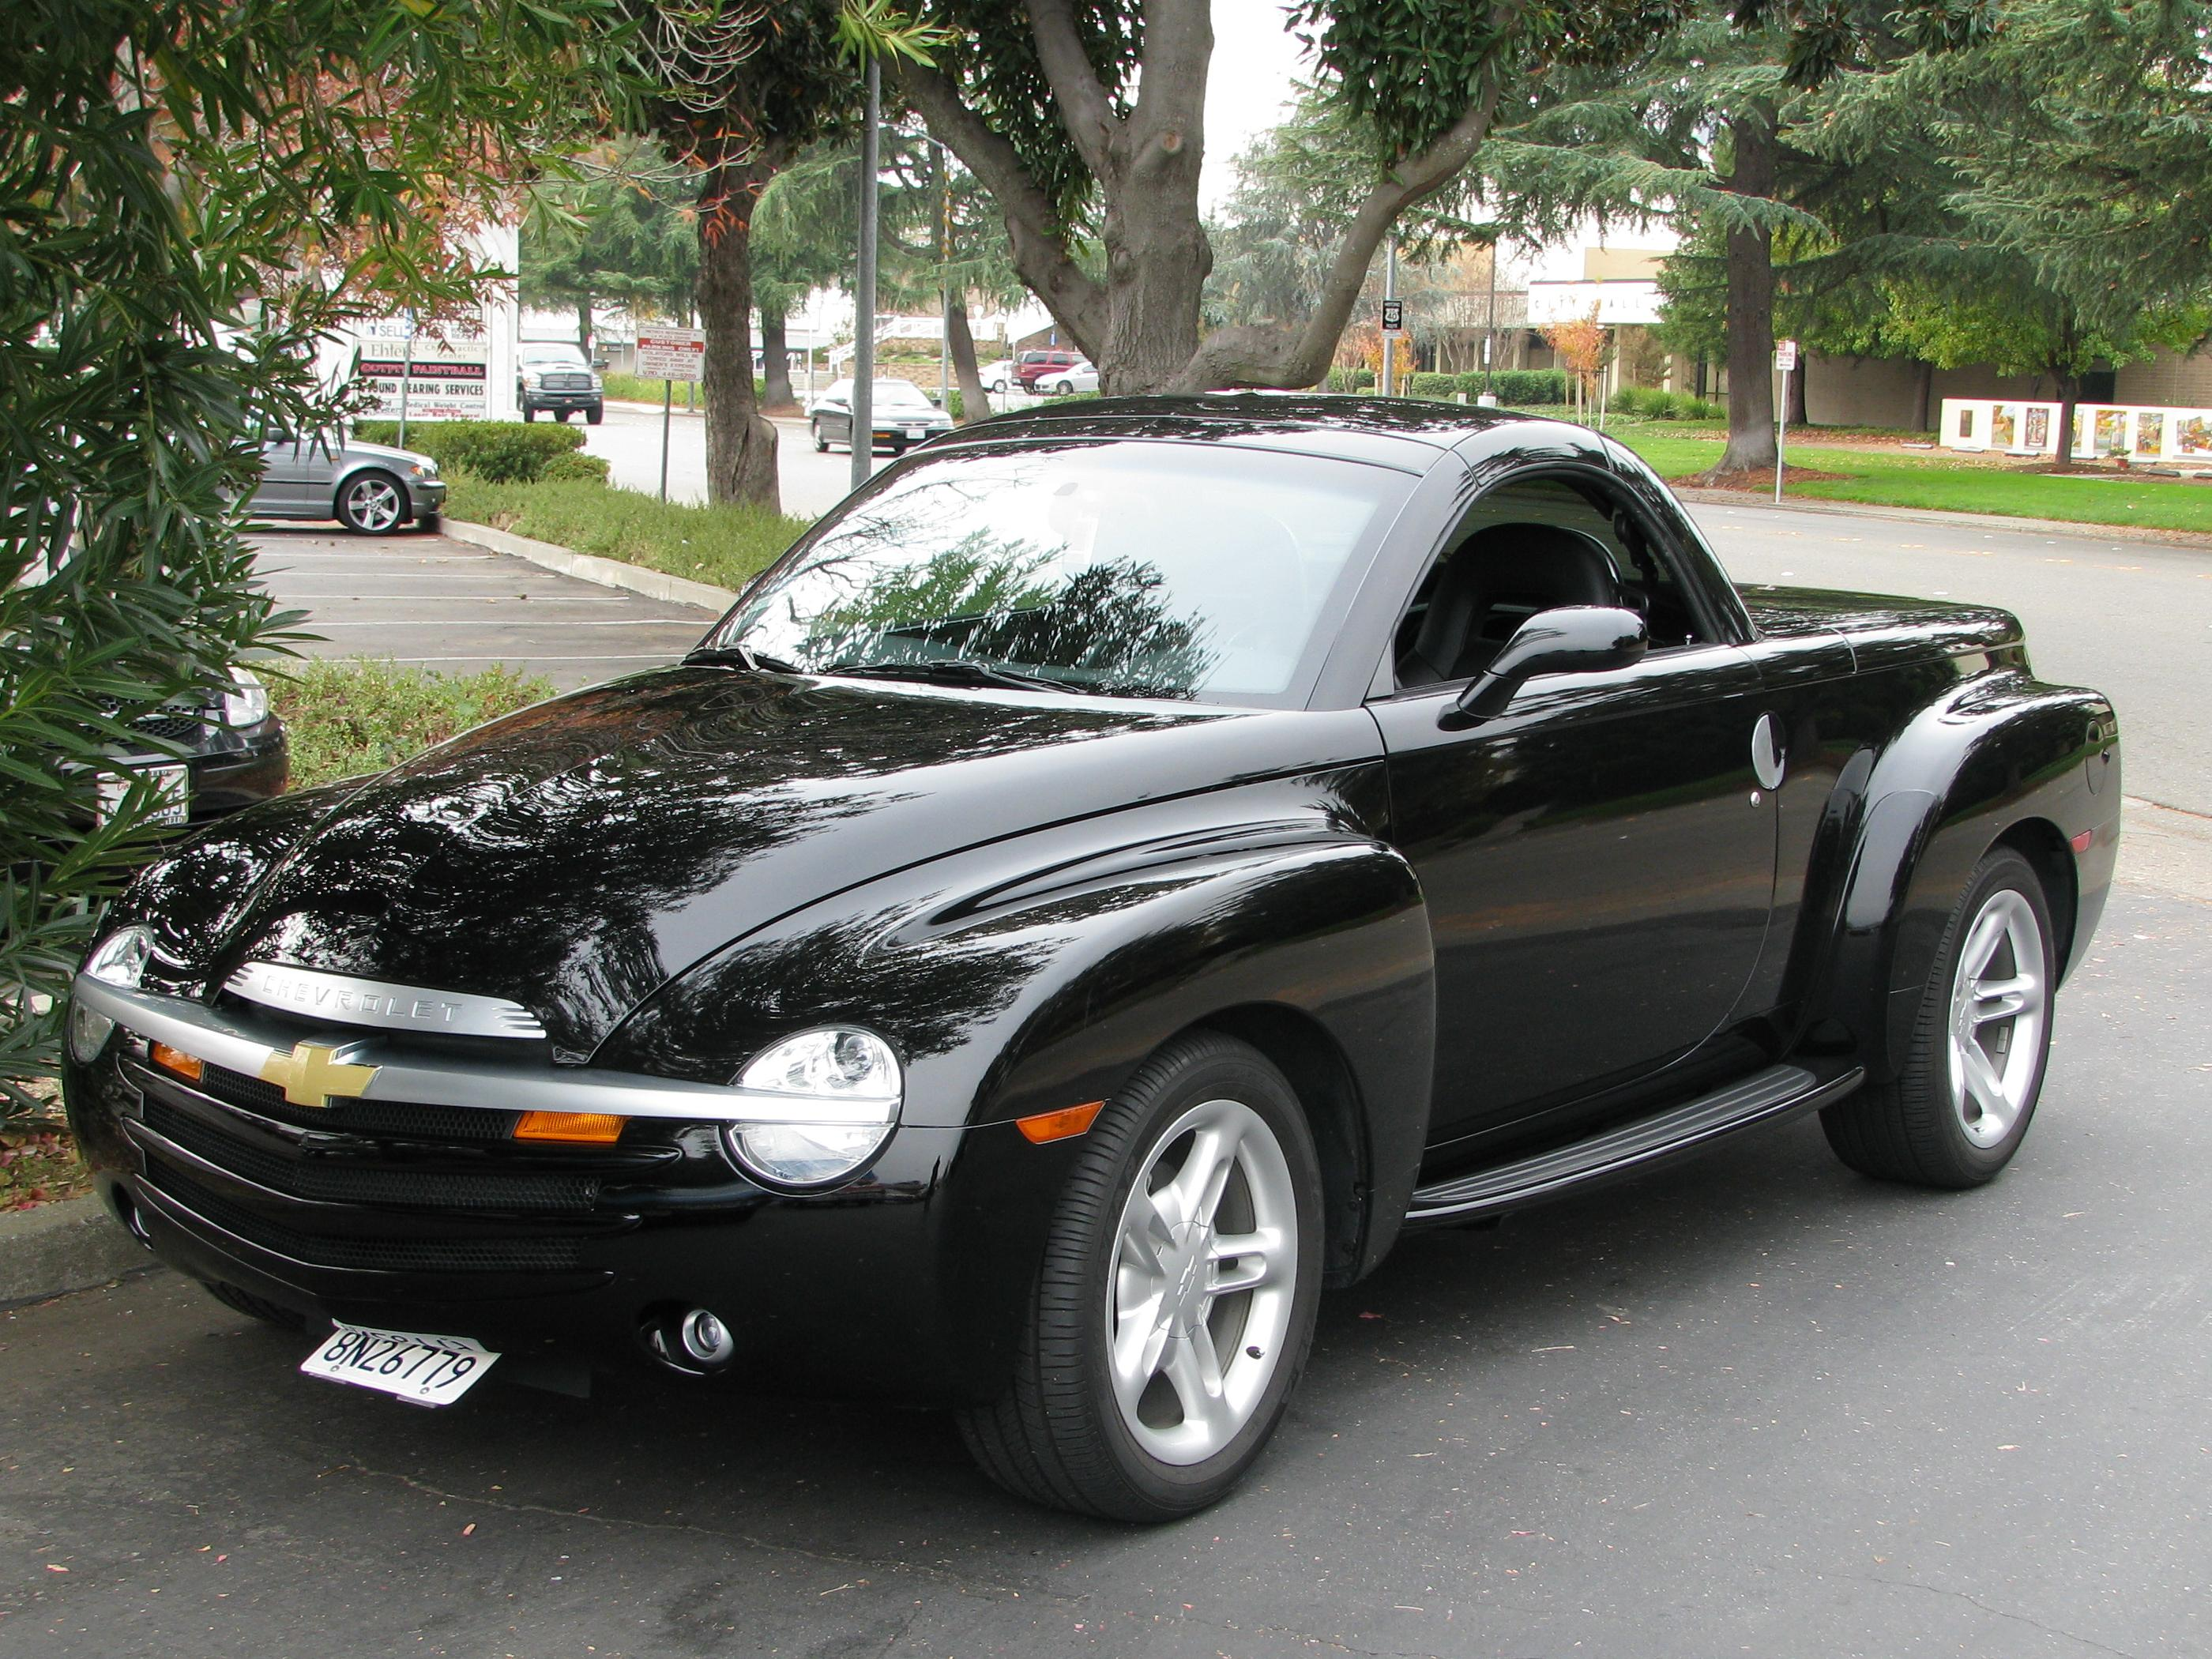 2004 Chevy Ssr Wiring Diagrams | Wiring Liry on geo storm wiring diagram, dodge 2500 wiring diagram, willys wiring diagram,